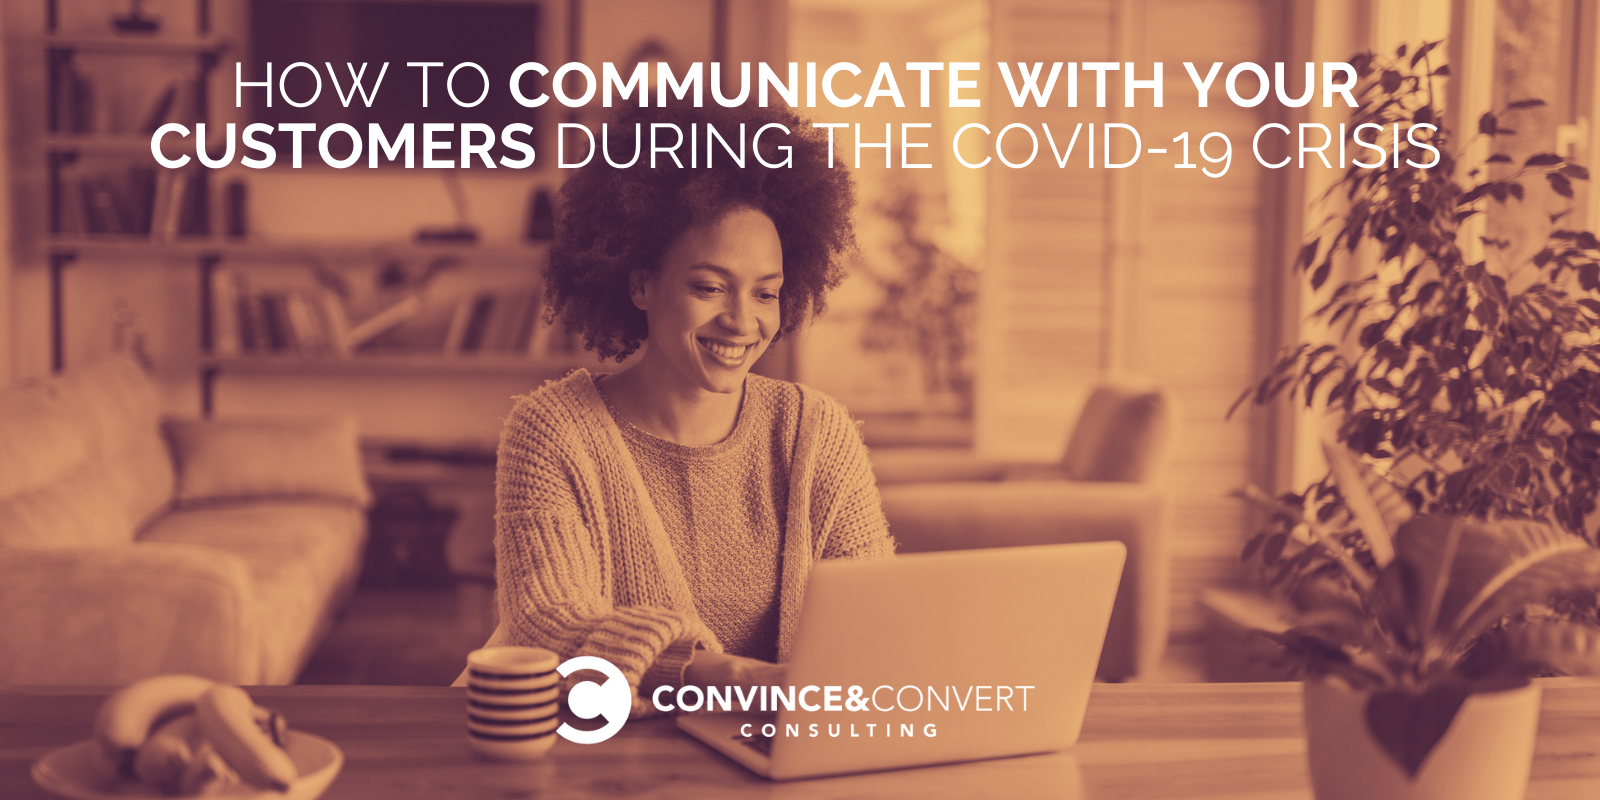 How to Communicate with Your Customers During the COVID-19 Crisis